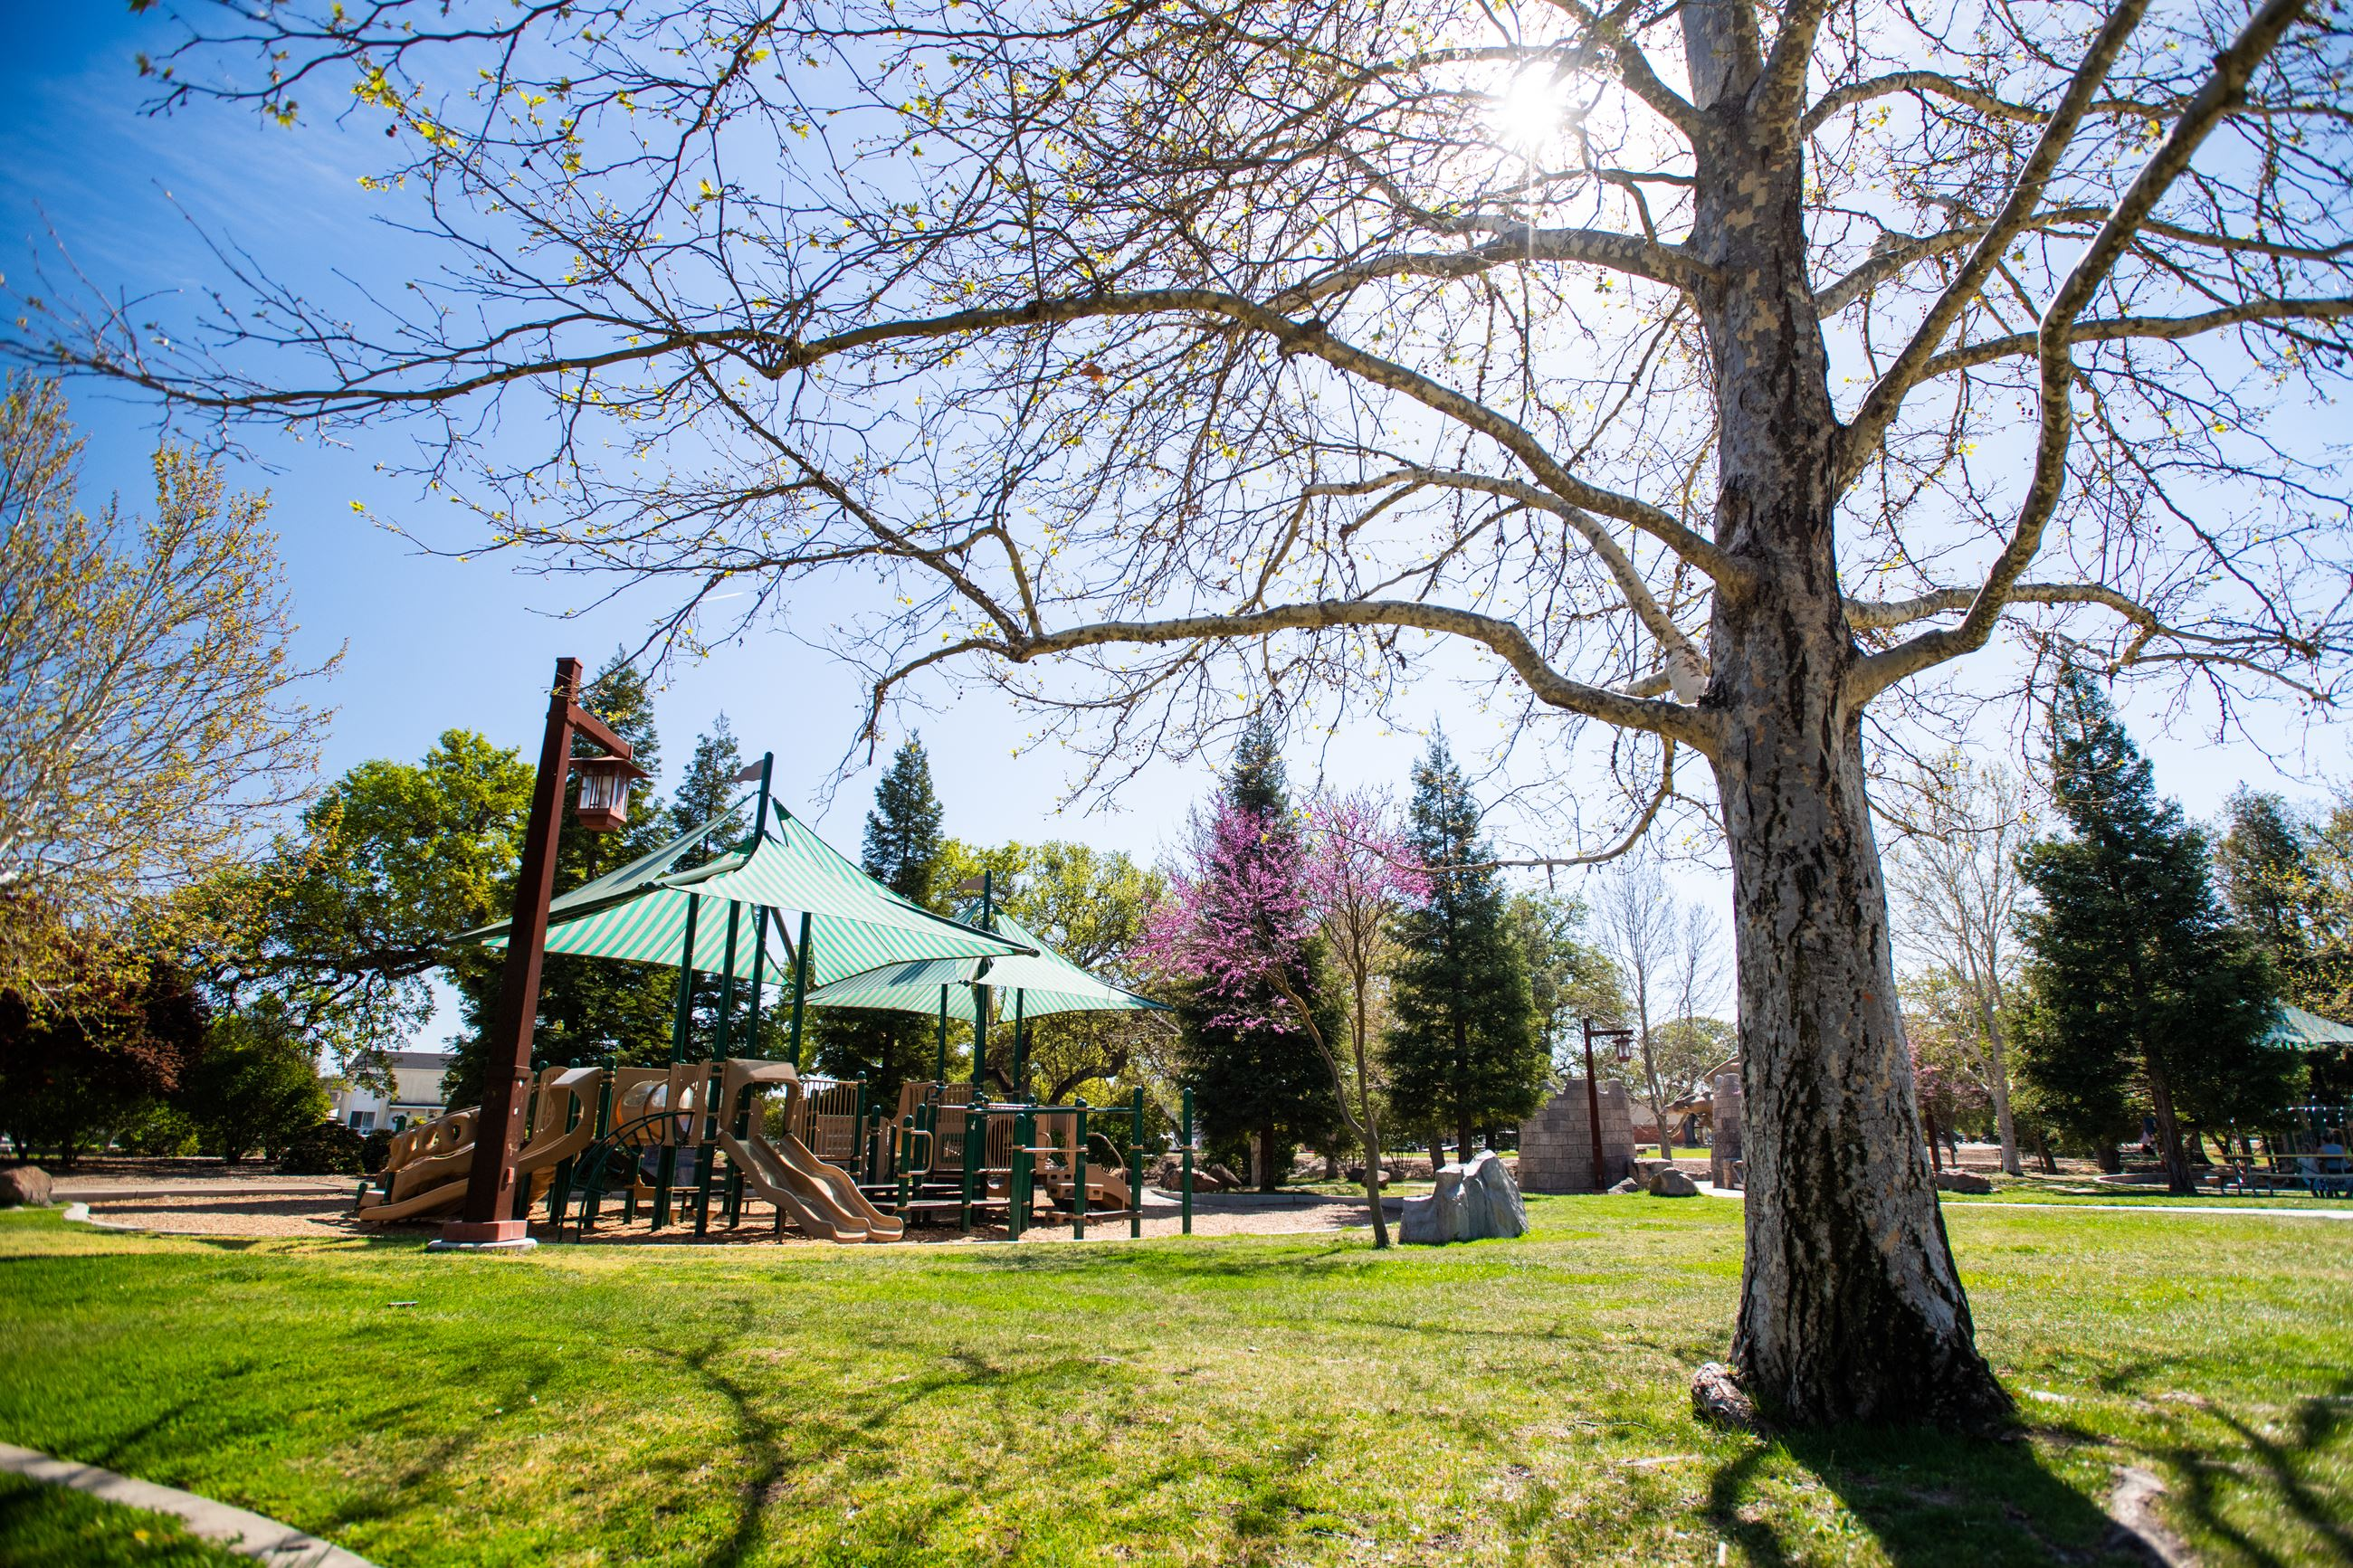 Sherwood Park Playground (slide)